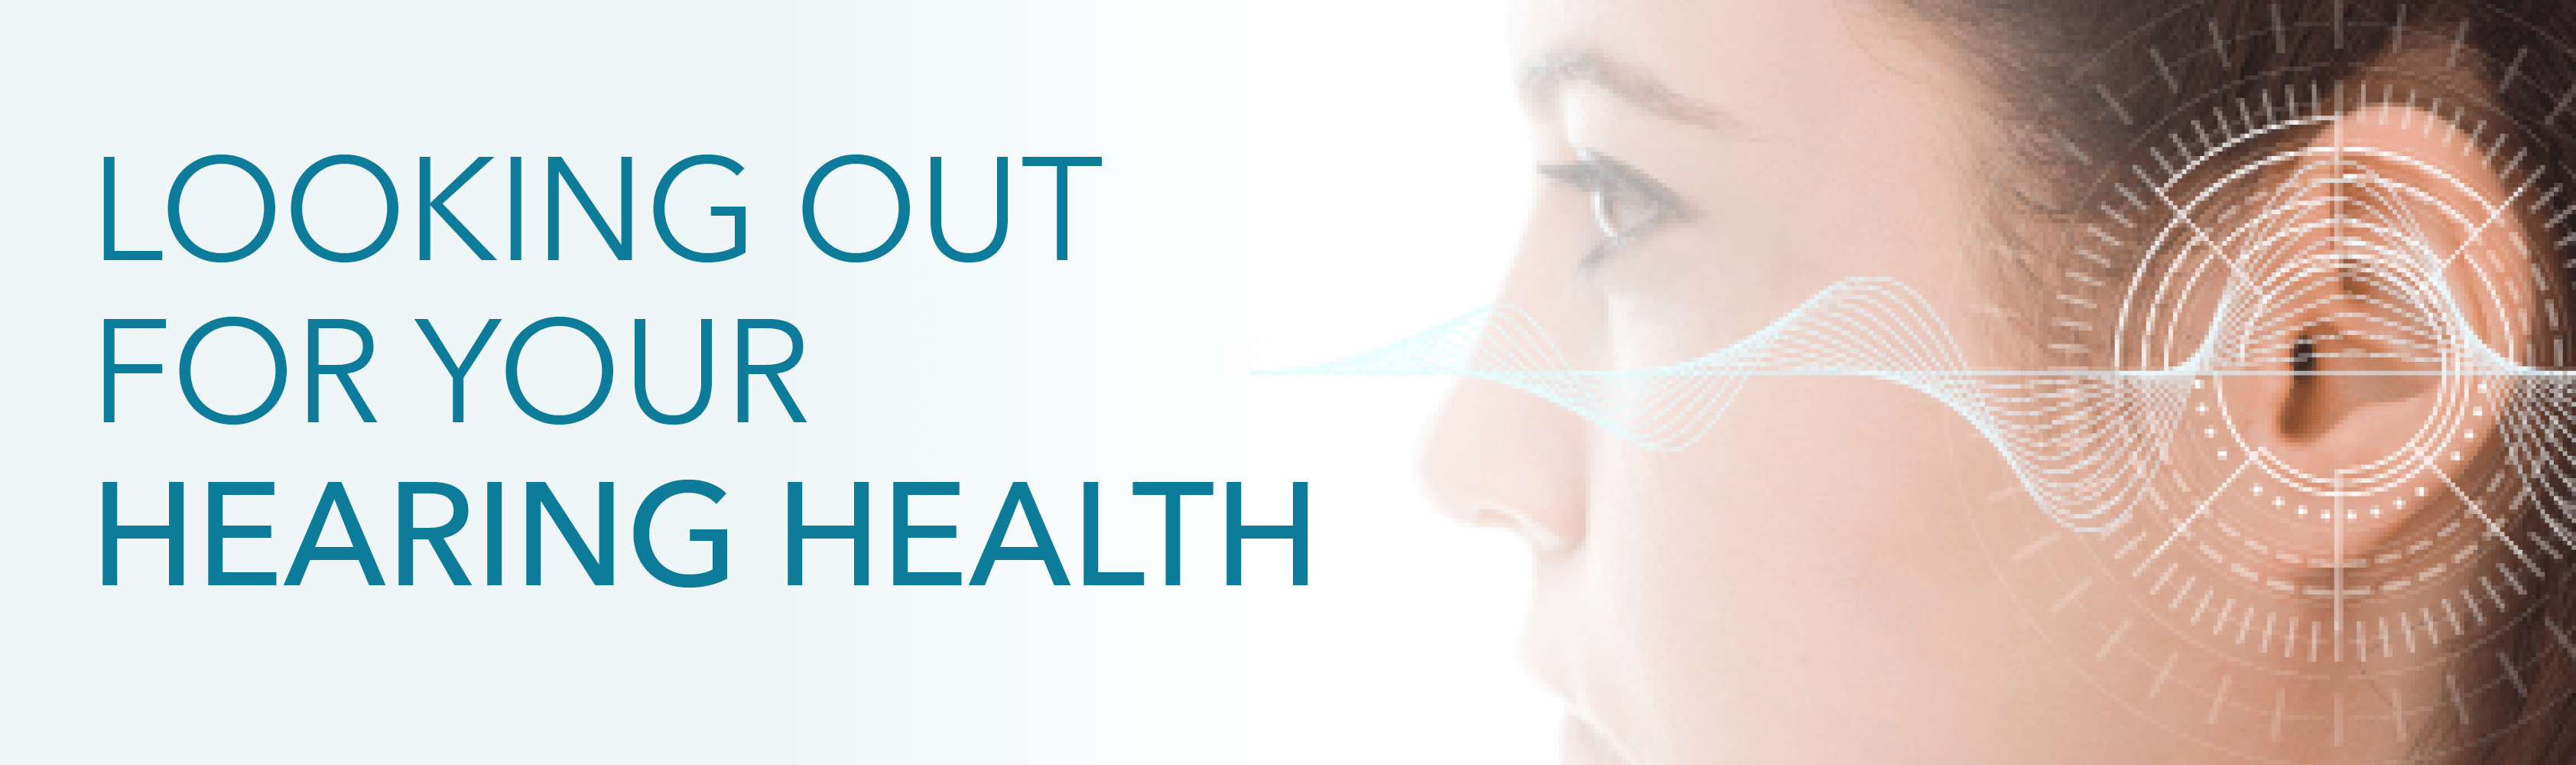 Looking Out for Your Hearing Health